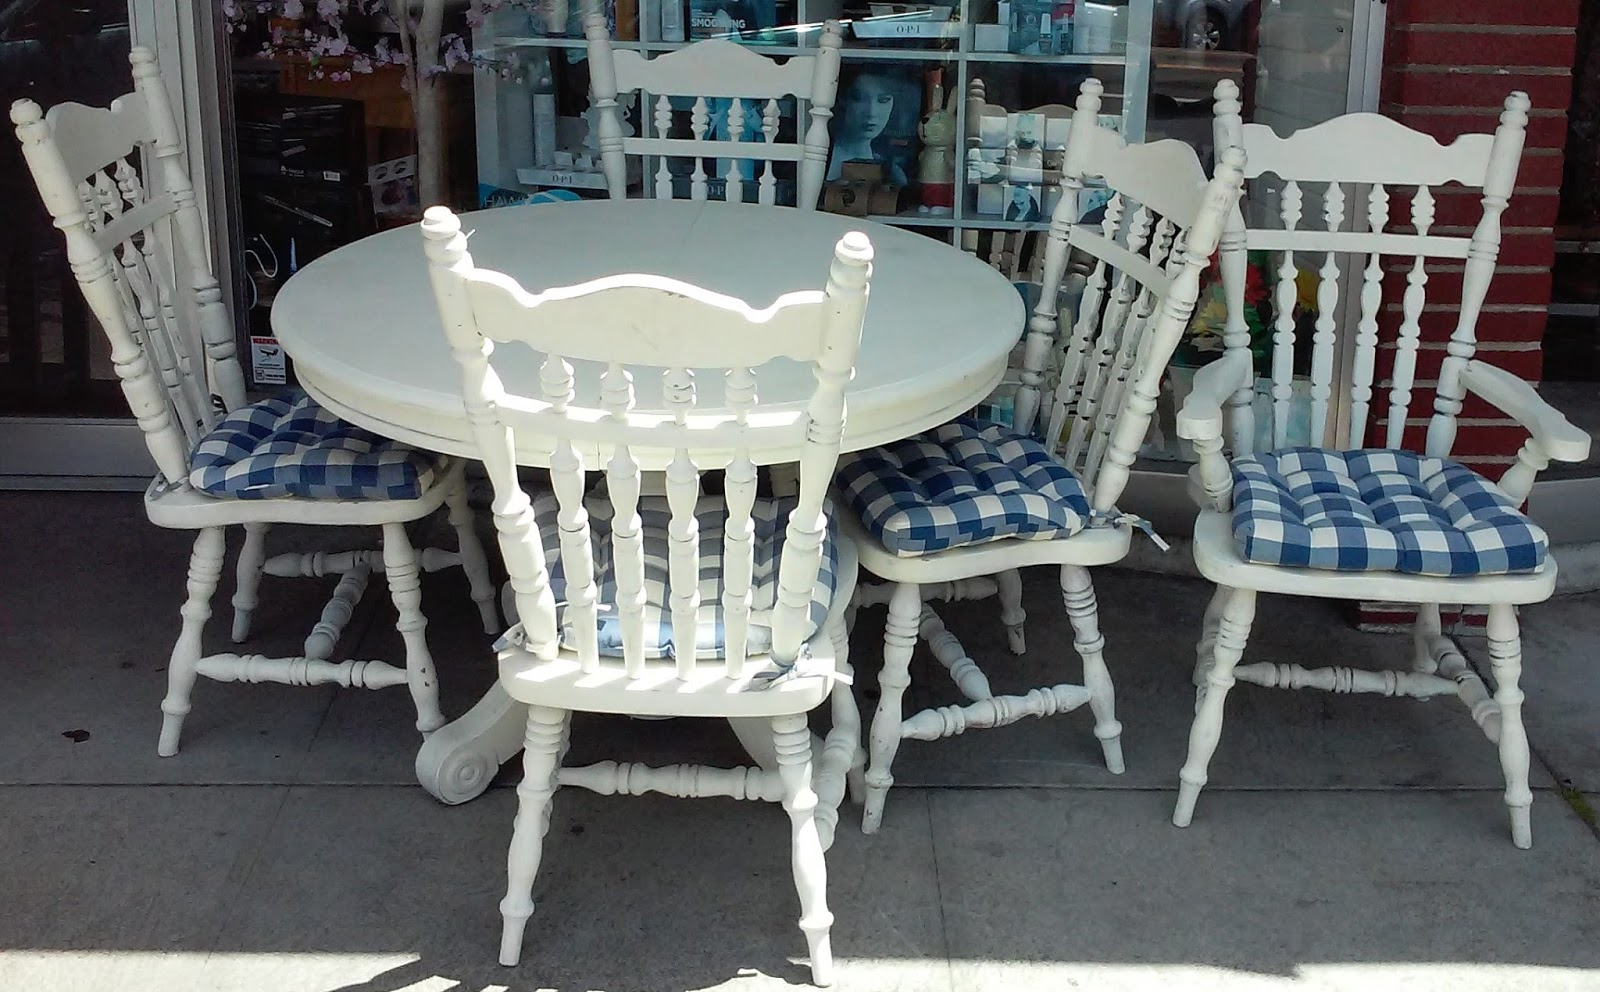 Uhuru furniture collectibles sold shabby chic pedestal dining set table leaf 5 chairs 60 - Shabby chic dining table set ...